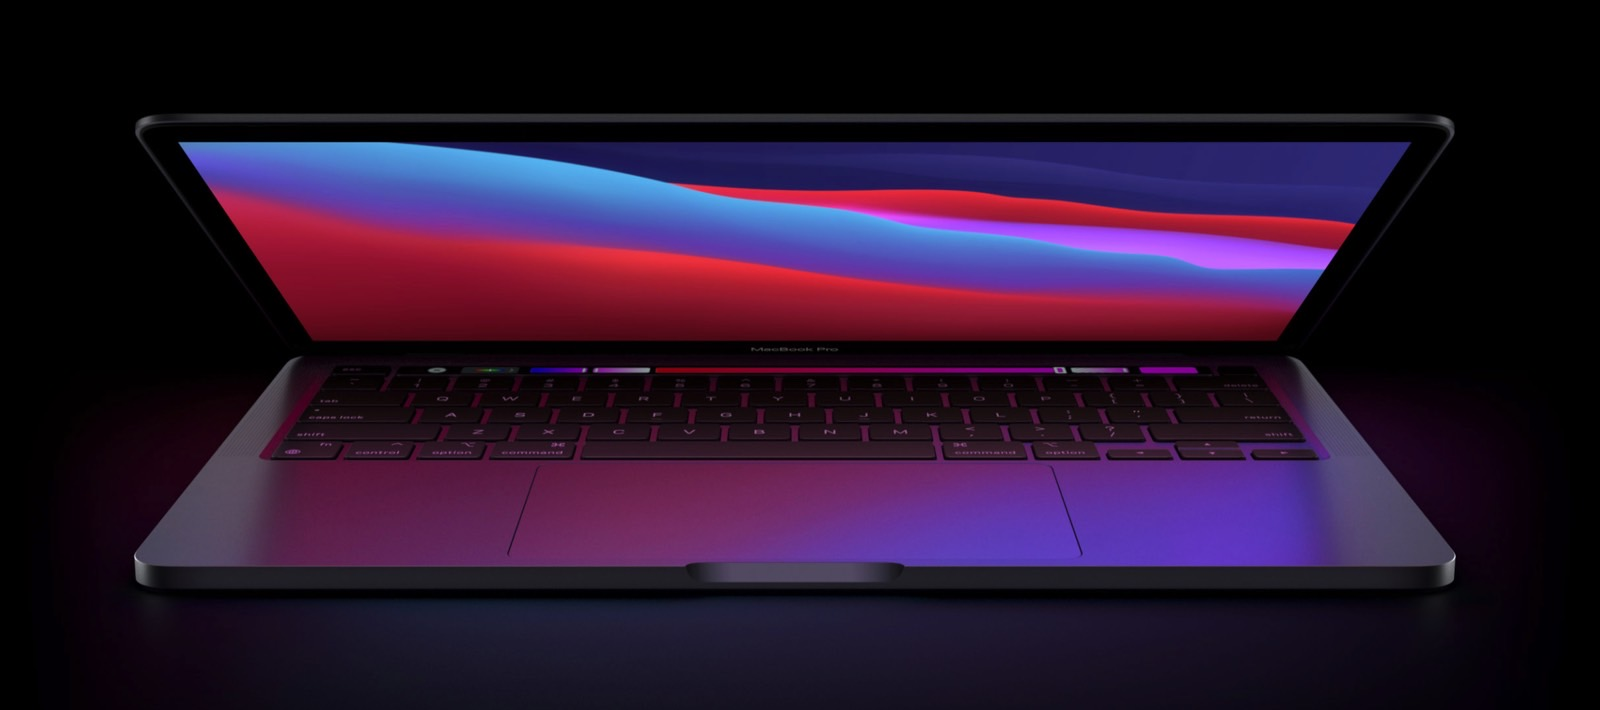 This could be bad news about Apple's redesigned MacBook Pro coming this year